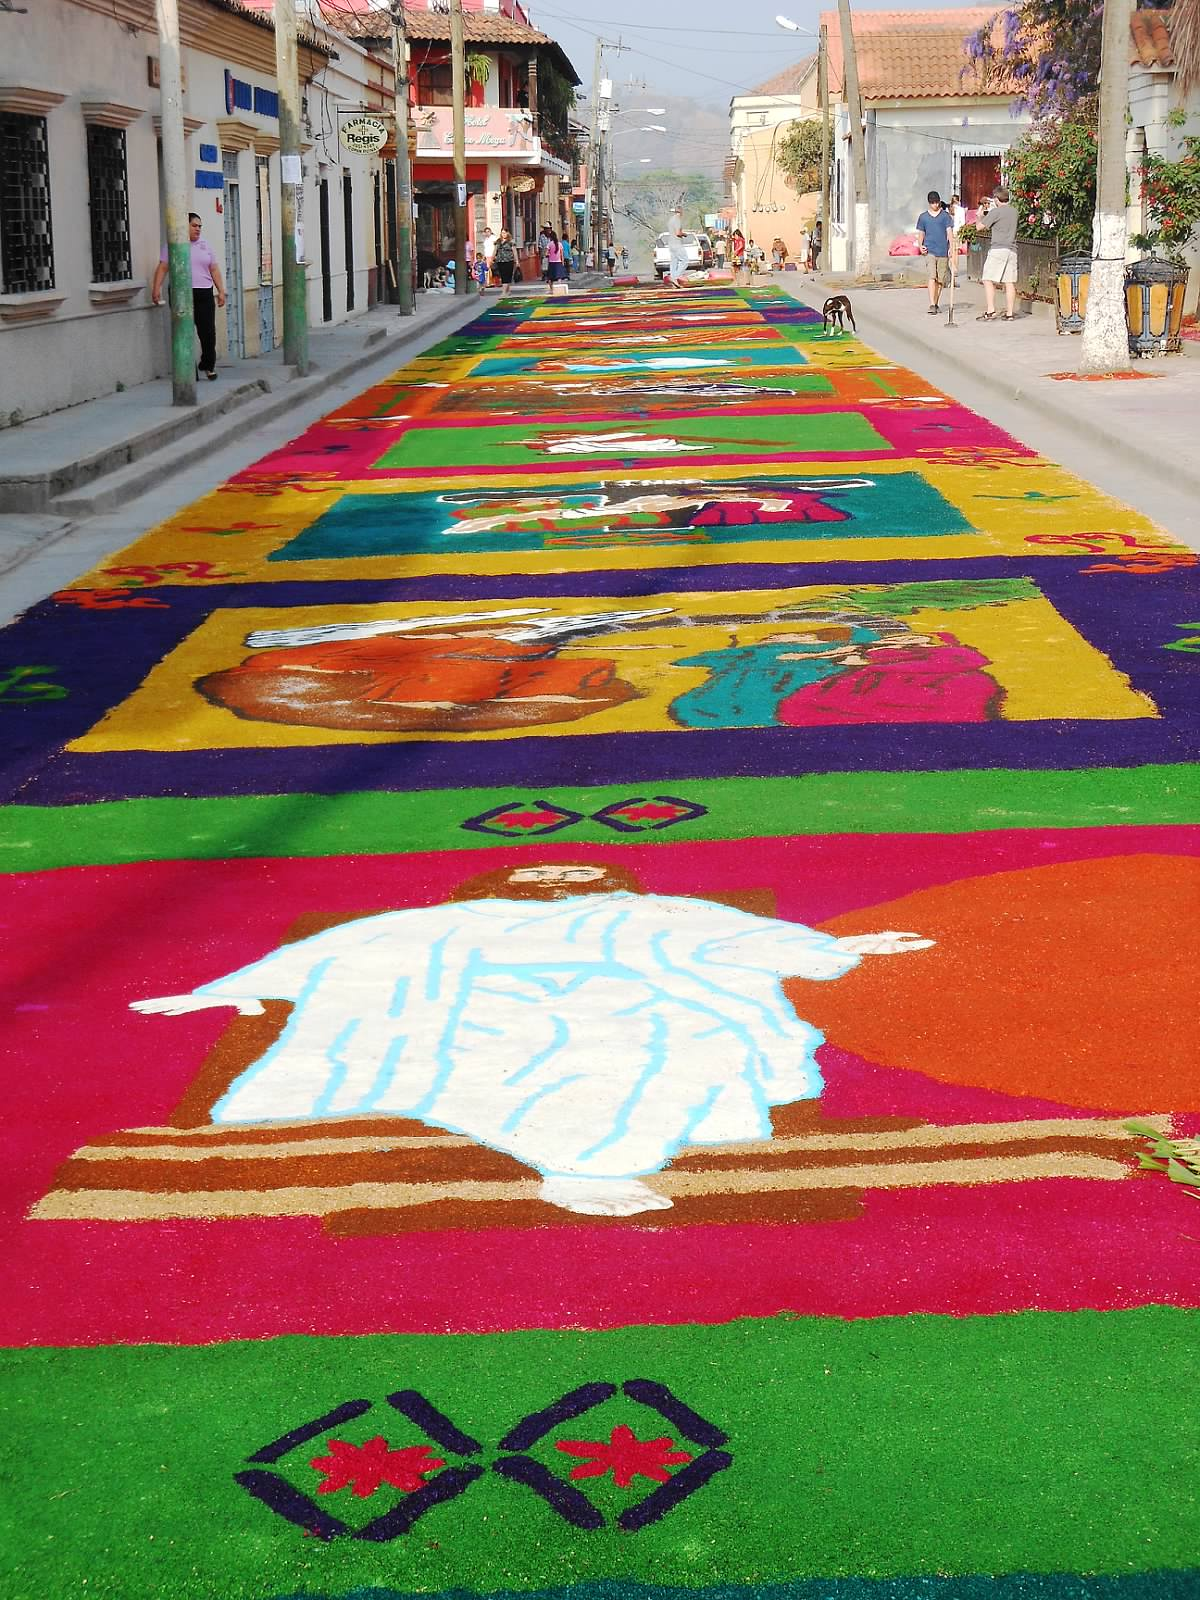 Photo © Jody Paterson | Easter Rug Festival, Honduras